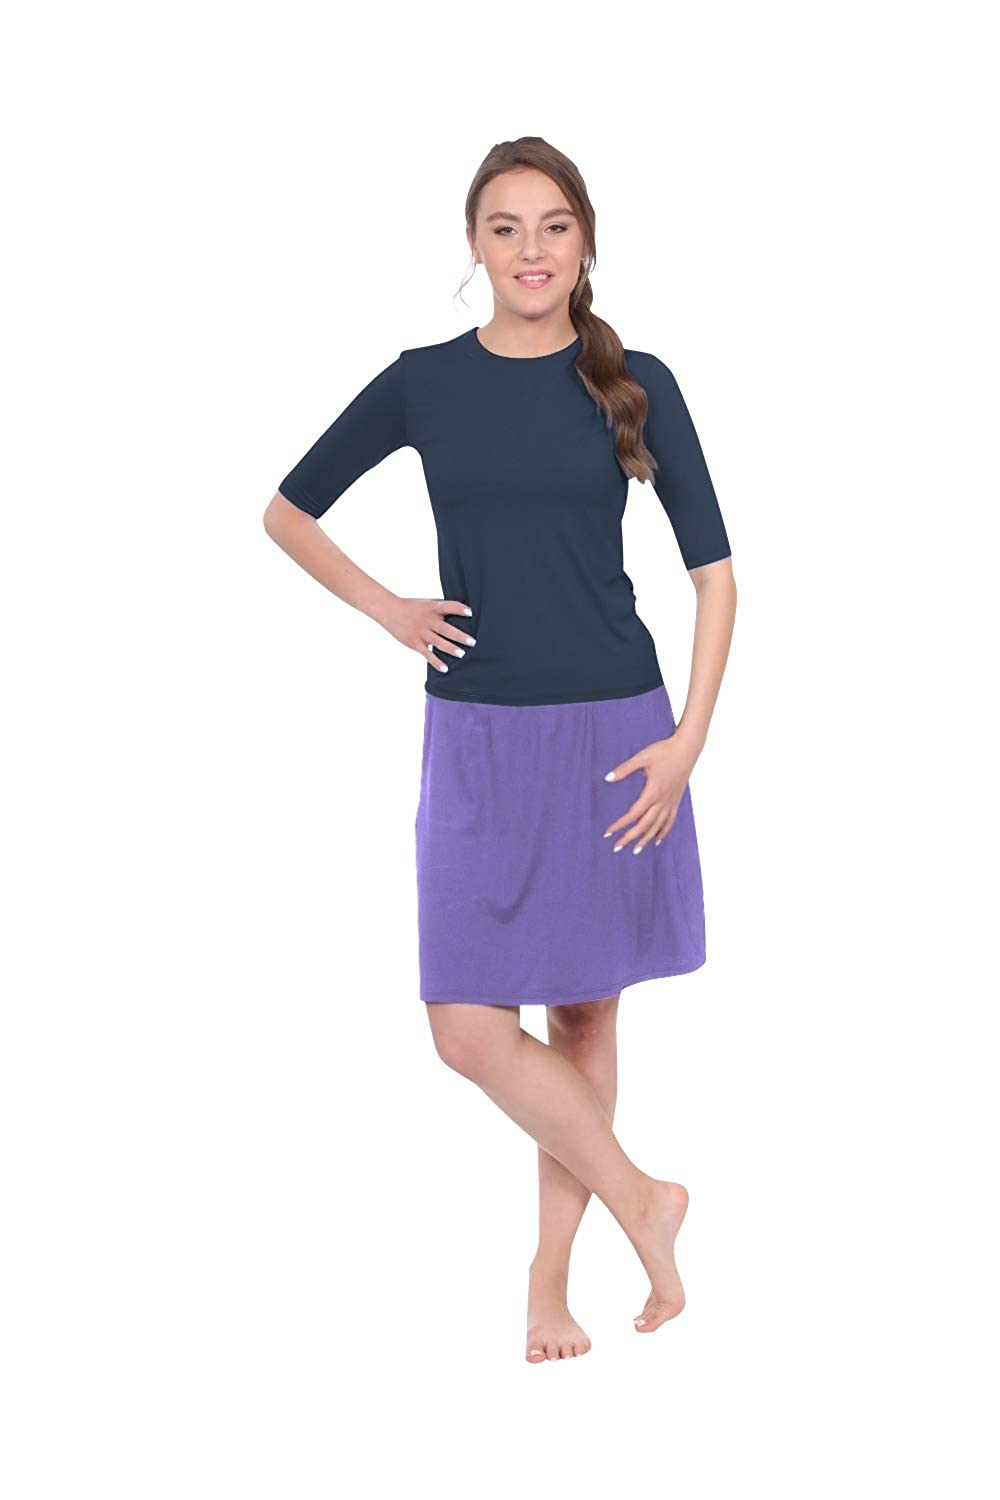 Amethyst Kosher Casual Women's to The Knee Length Running Skirt with Built in Shorts